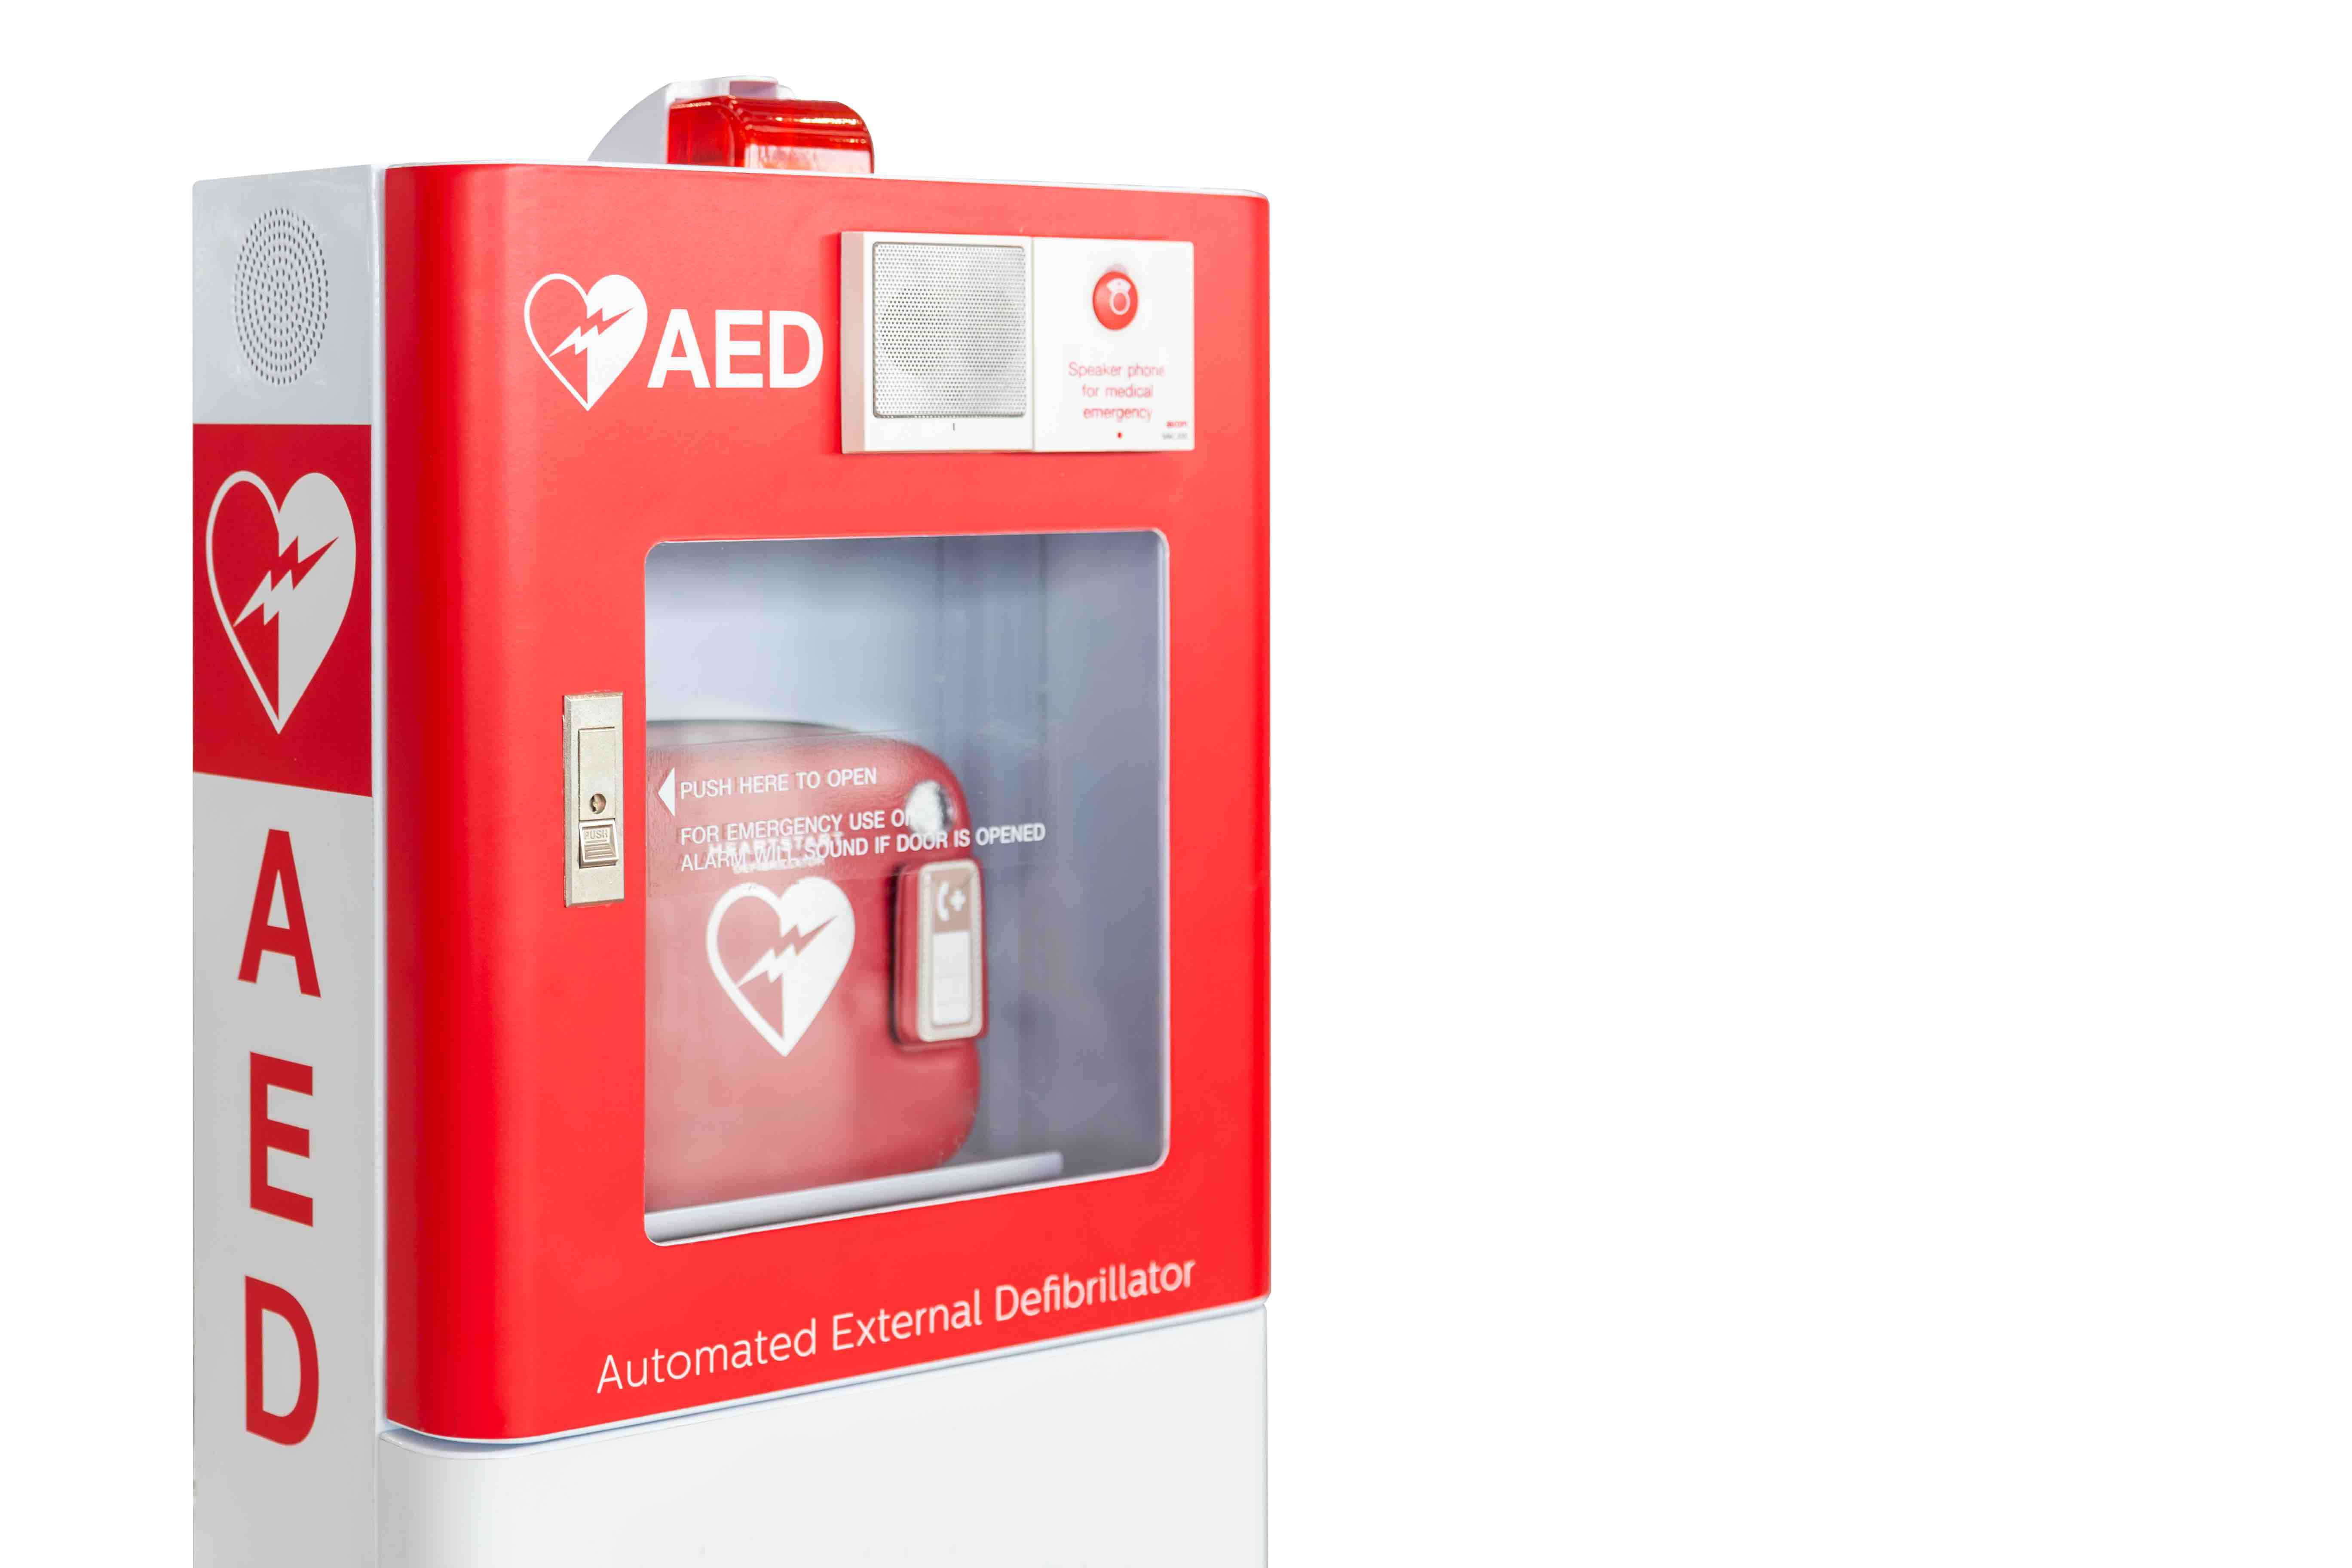 aed first aid kid red and white metal box